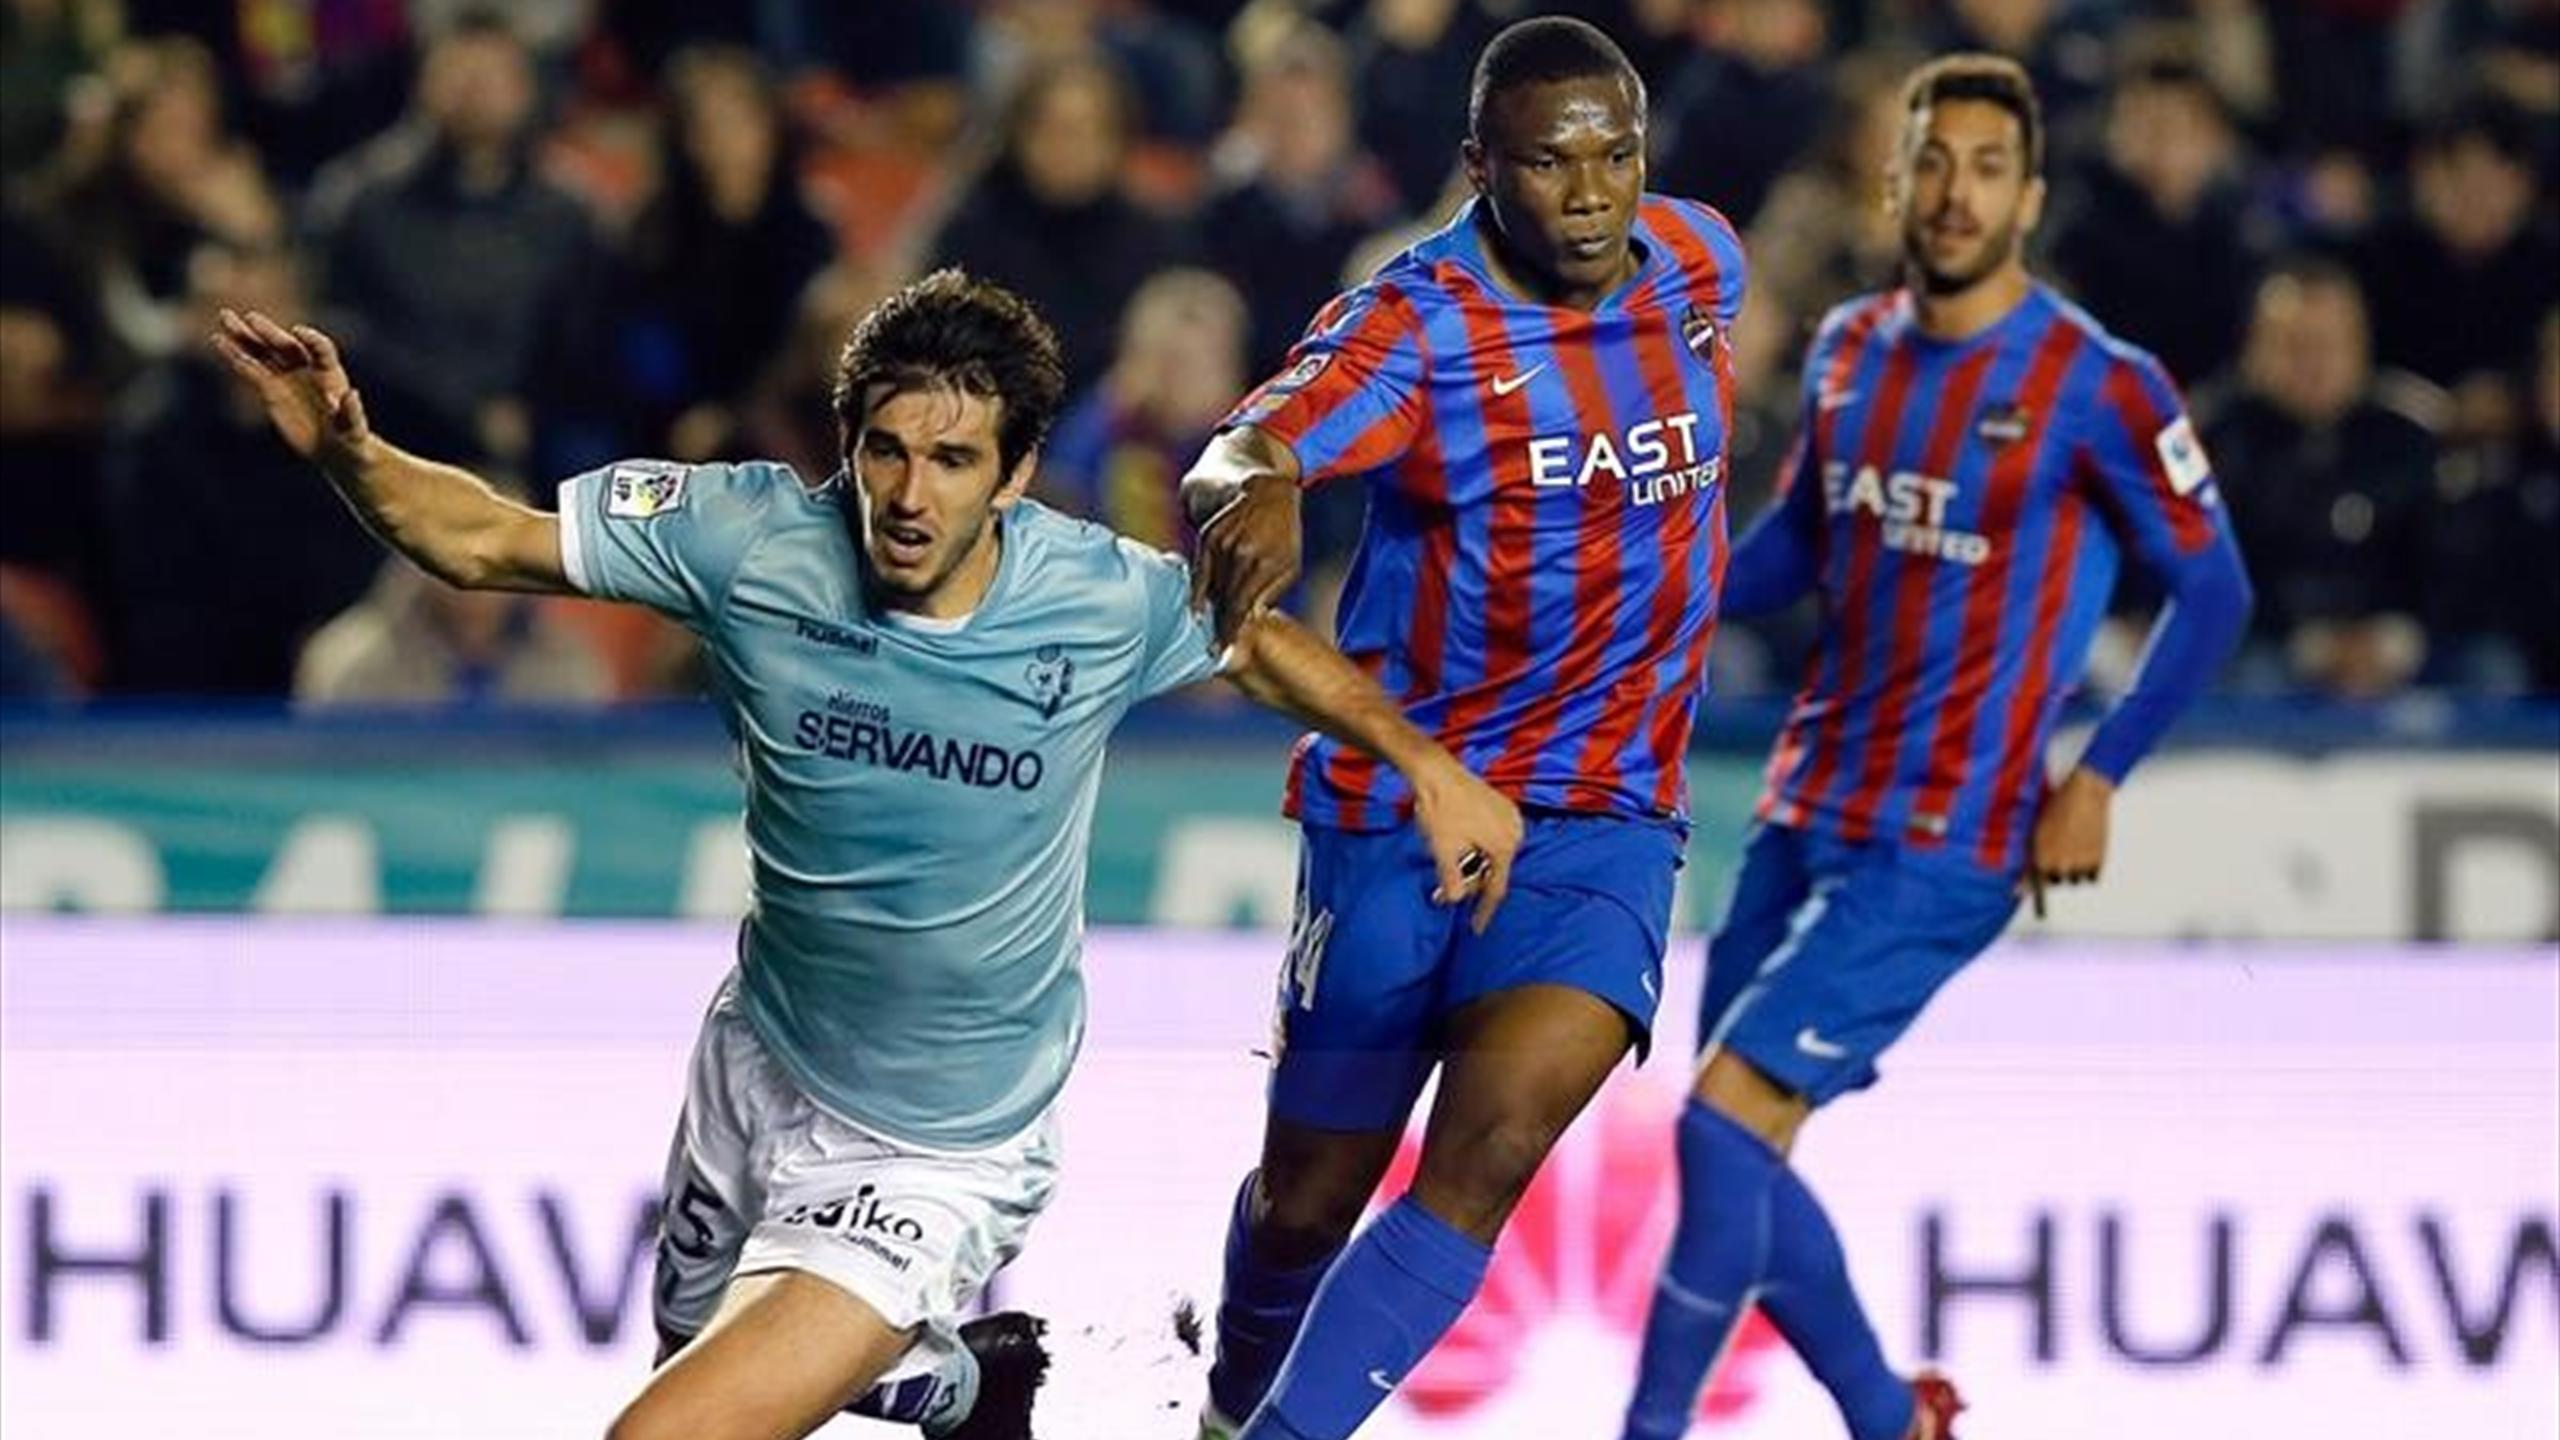 Video: Levante vs Eibar